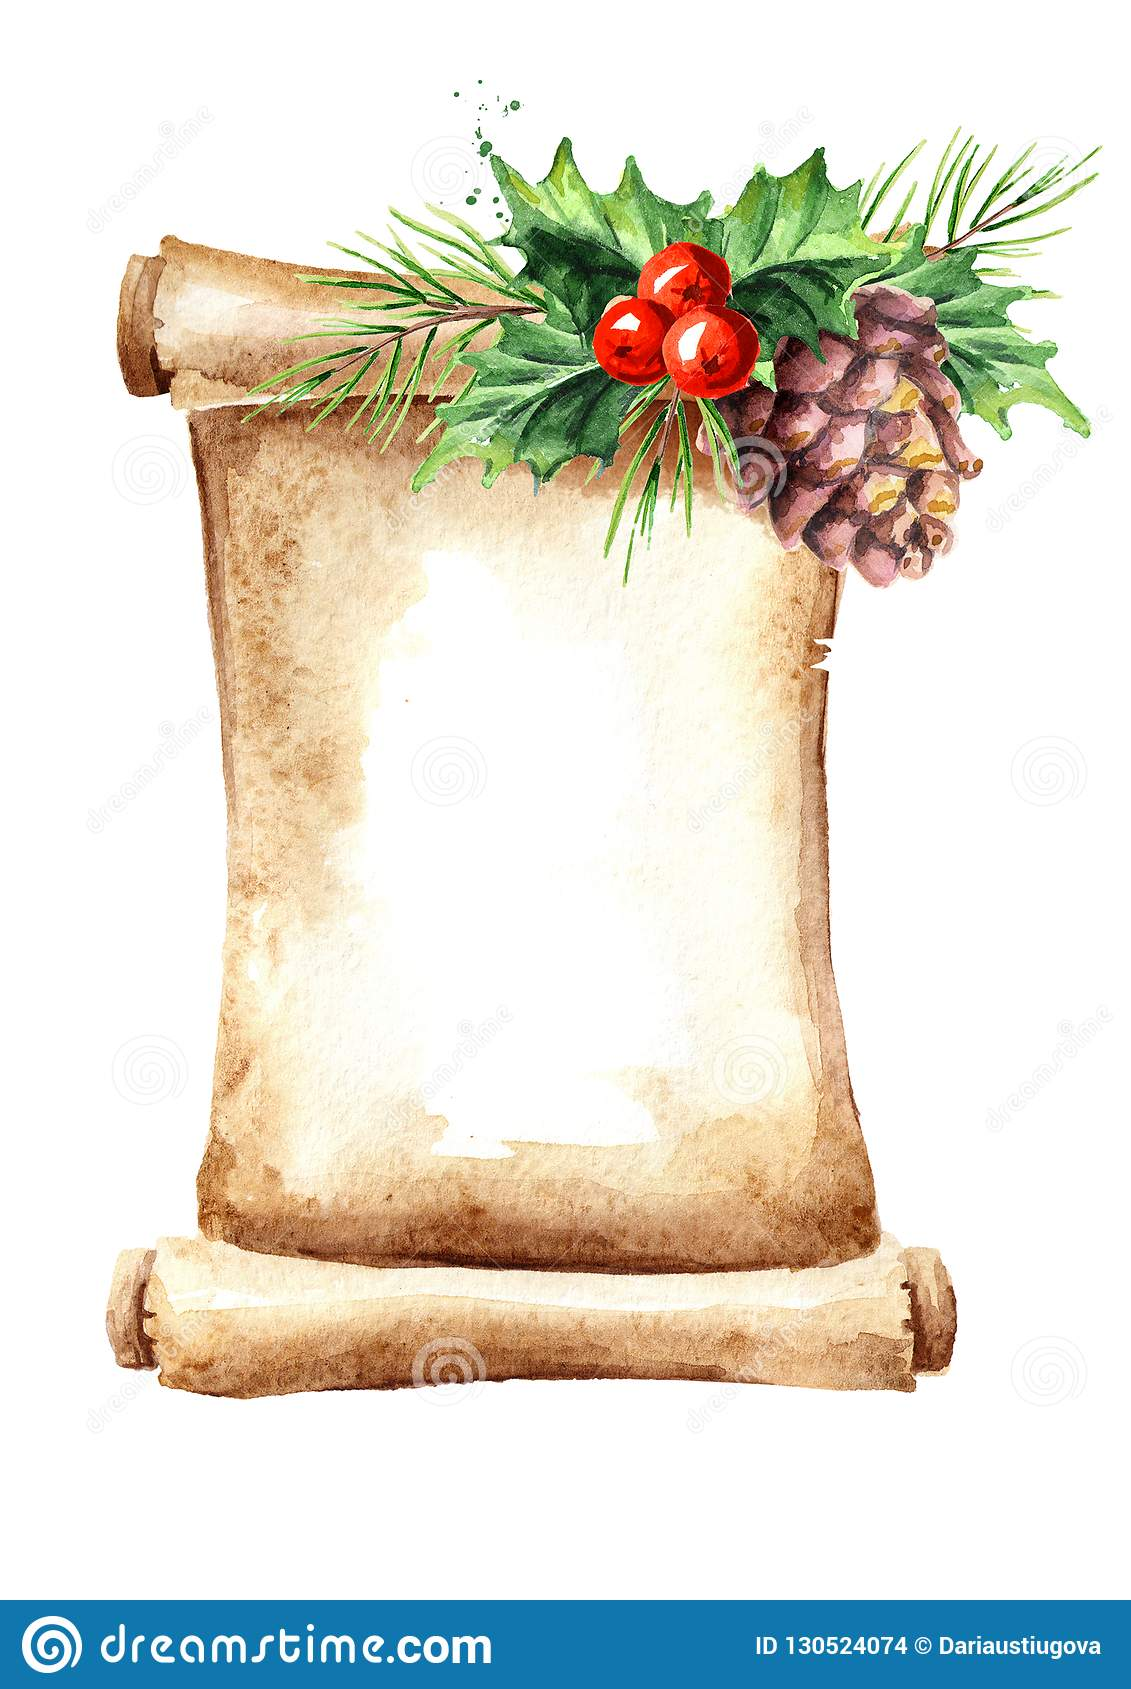 A scroll of old paper with Christmas elements.. Watercolor hand drawn illustration, isolated on white background.